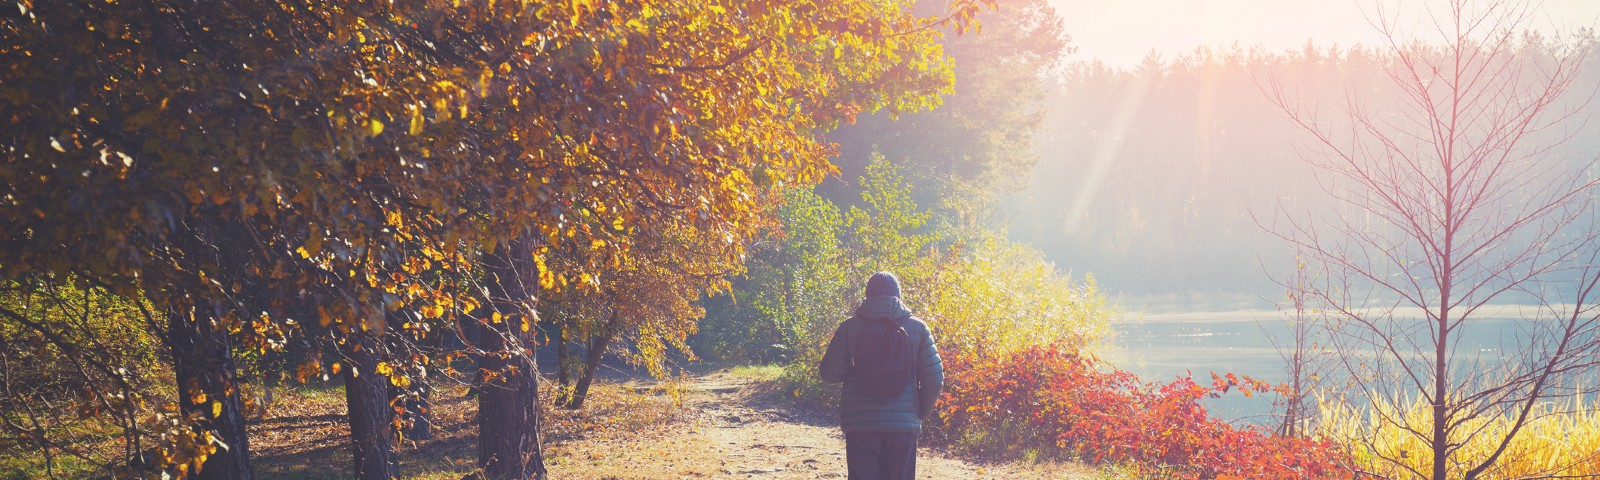 picture of a man walking on a dirt path by a river in autumn.